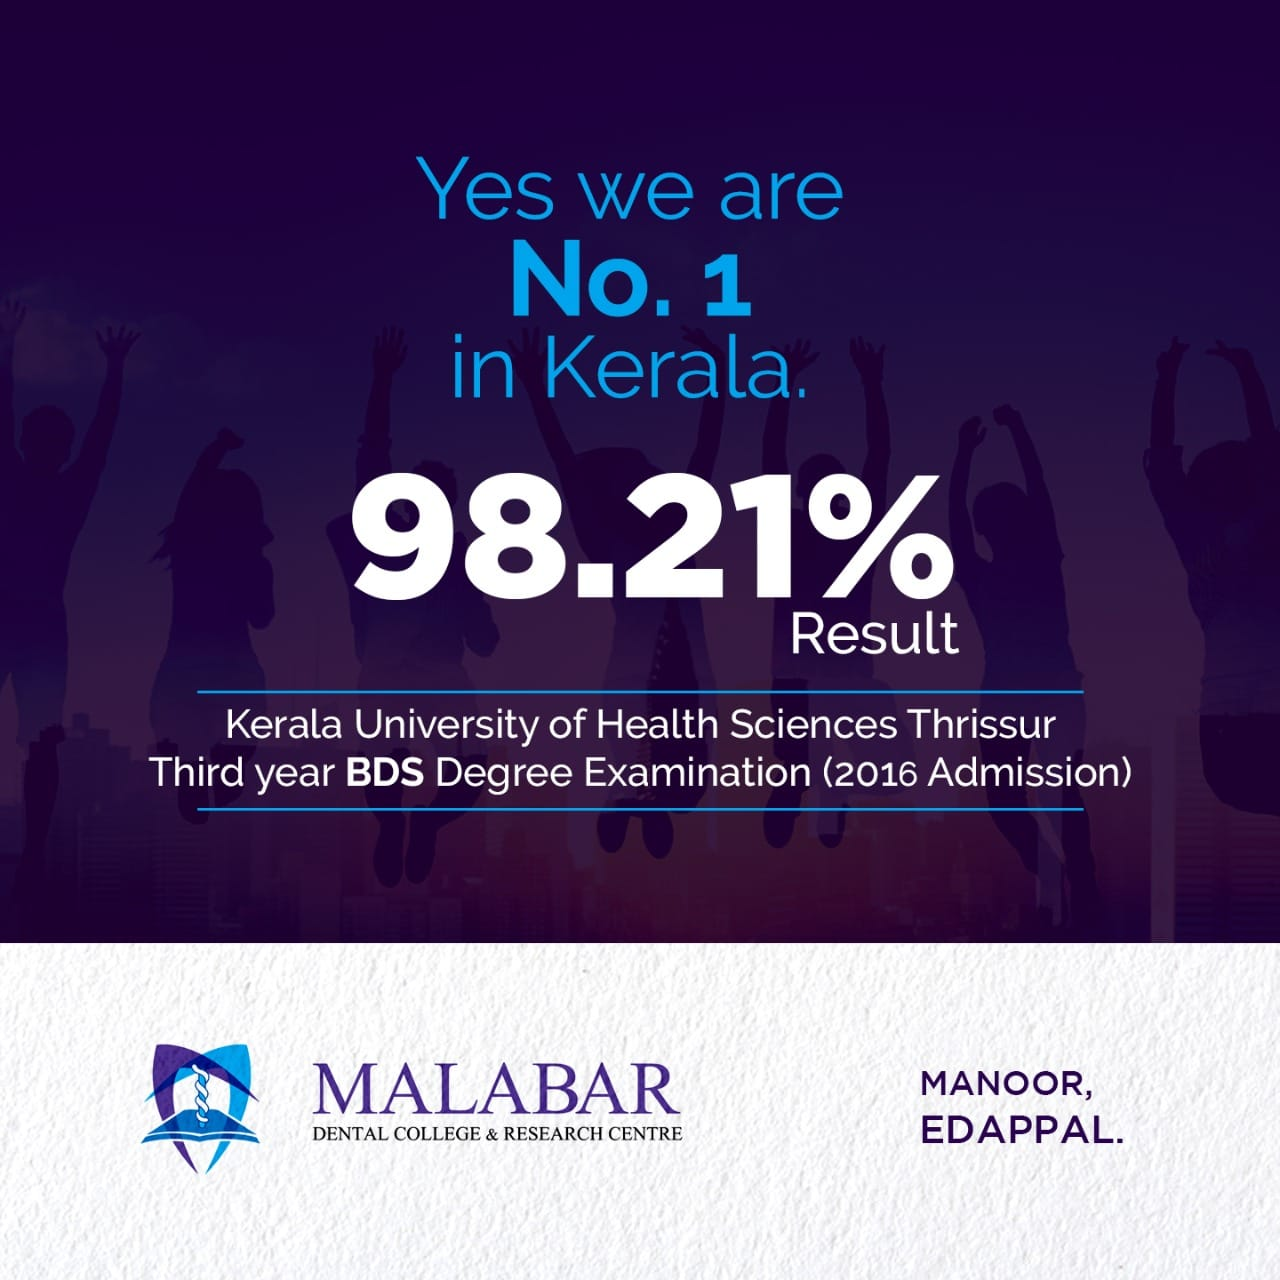 As per KUHS Results for 2019, Malabar Dental College has secured 1st Position among 25 Dental Colleges in Kerala with 98.21% pass percentage